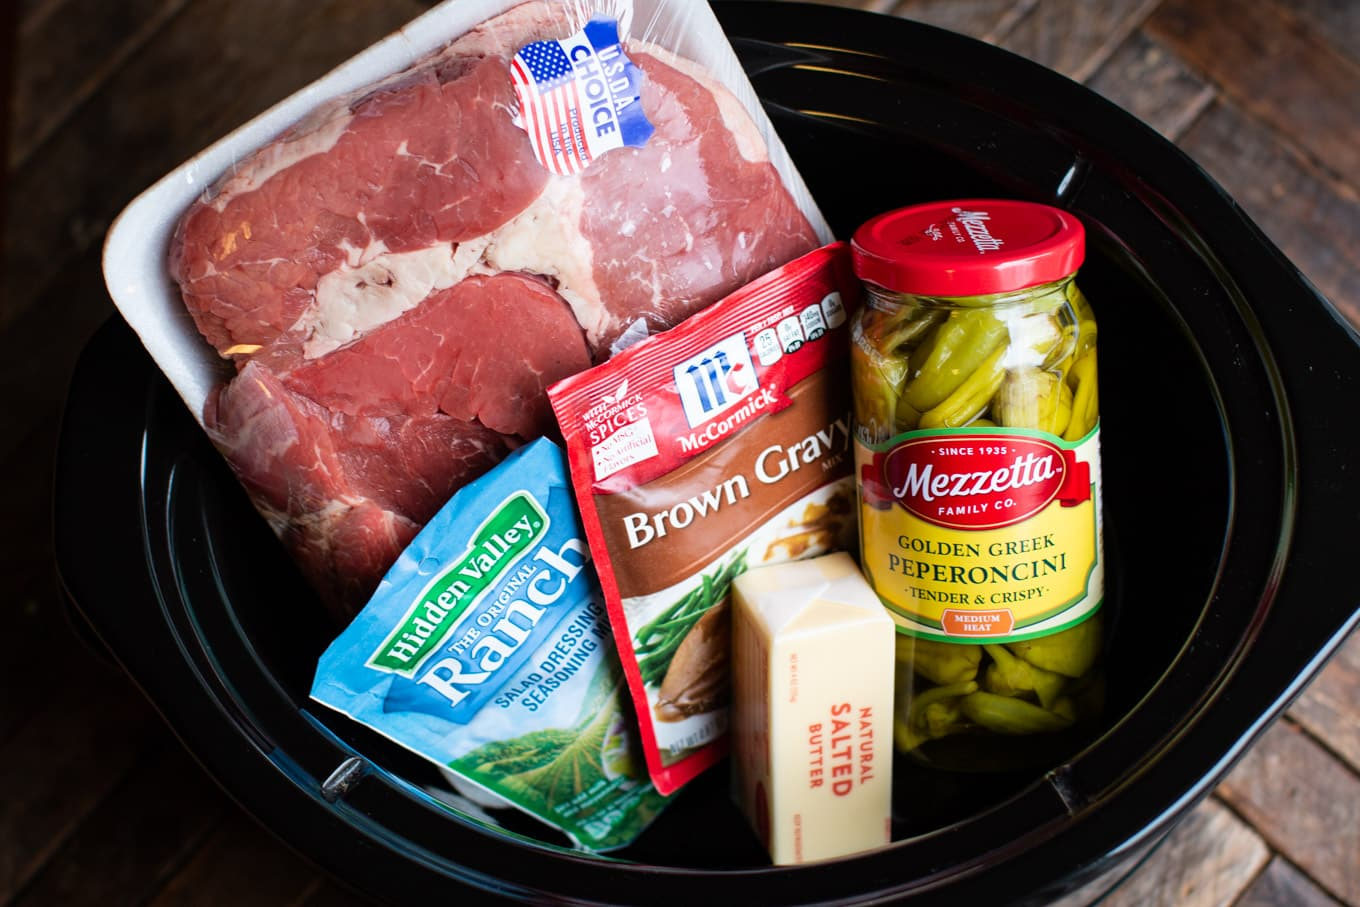 all ingredients still in packaging for Mississippi pot roast